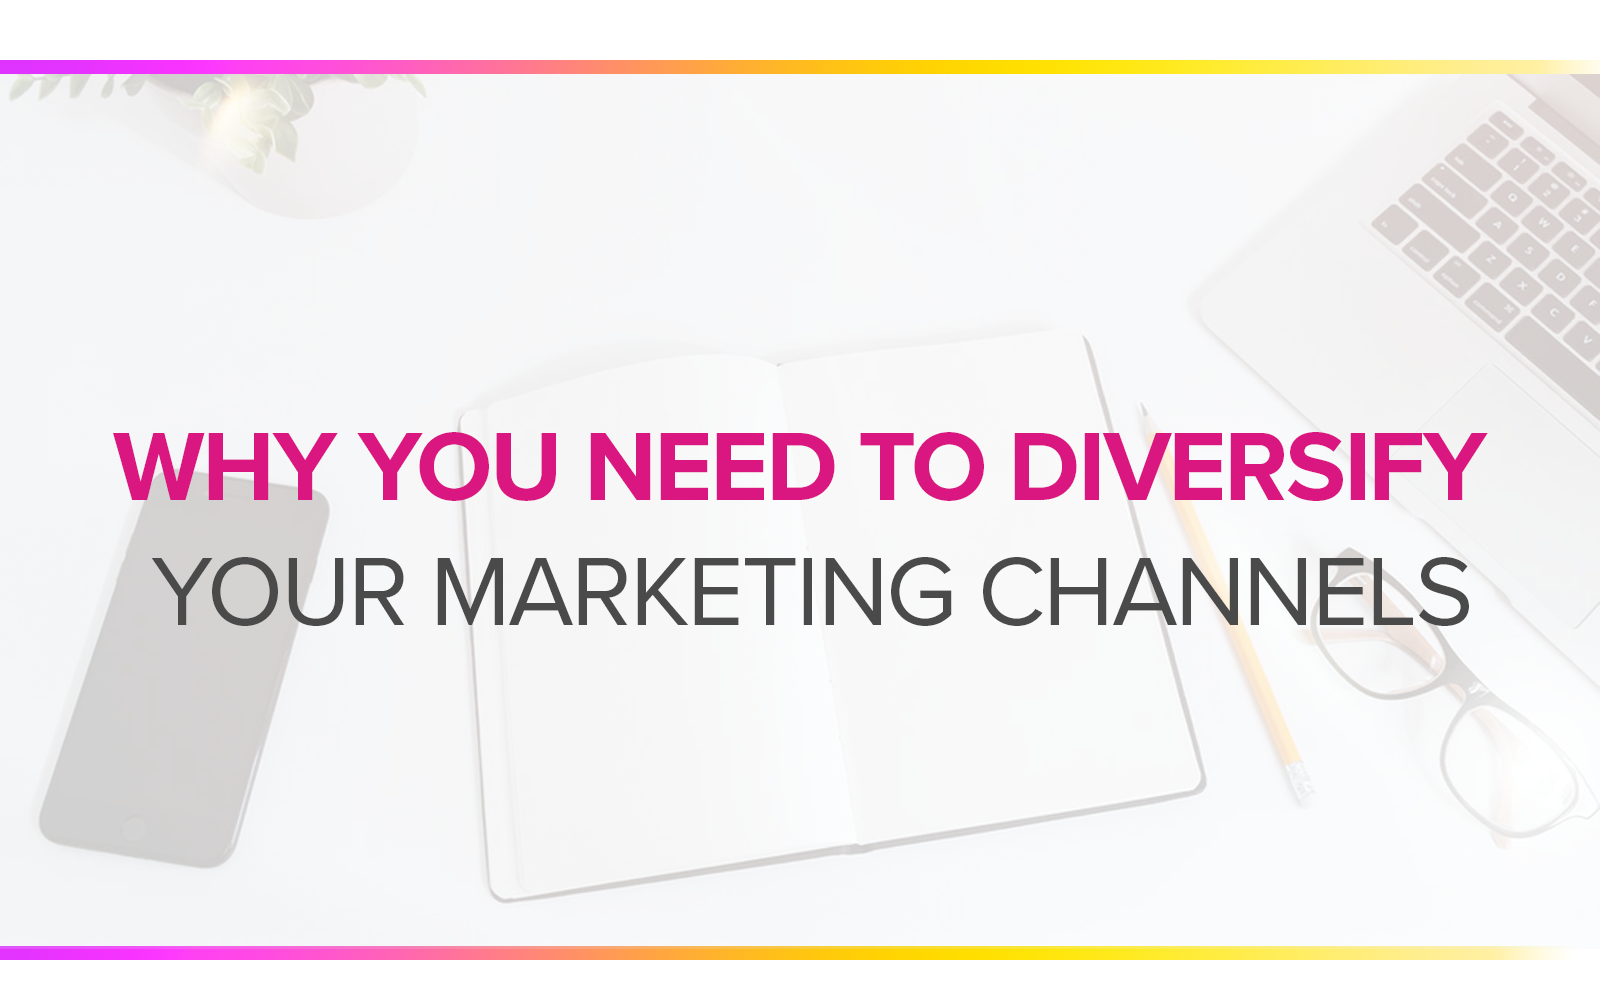 WHY YOU NEED TO DIVERSIFY YOUR MARKETING CHANNELS